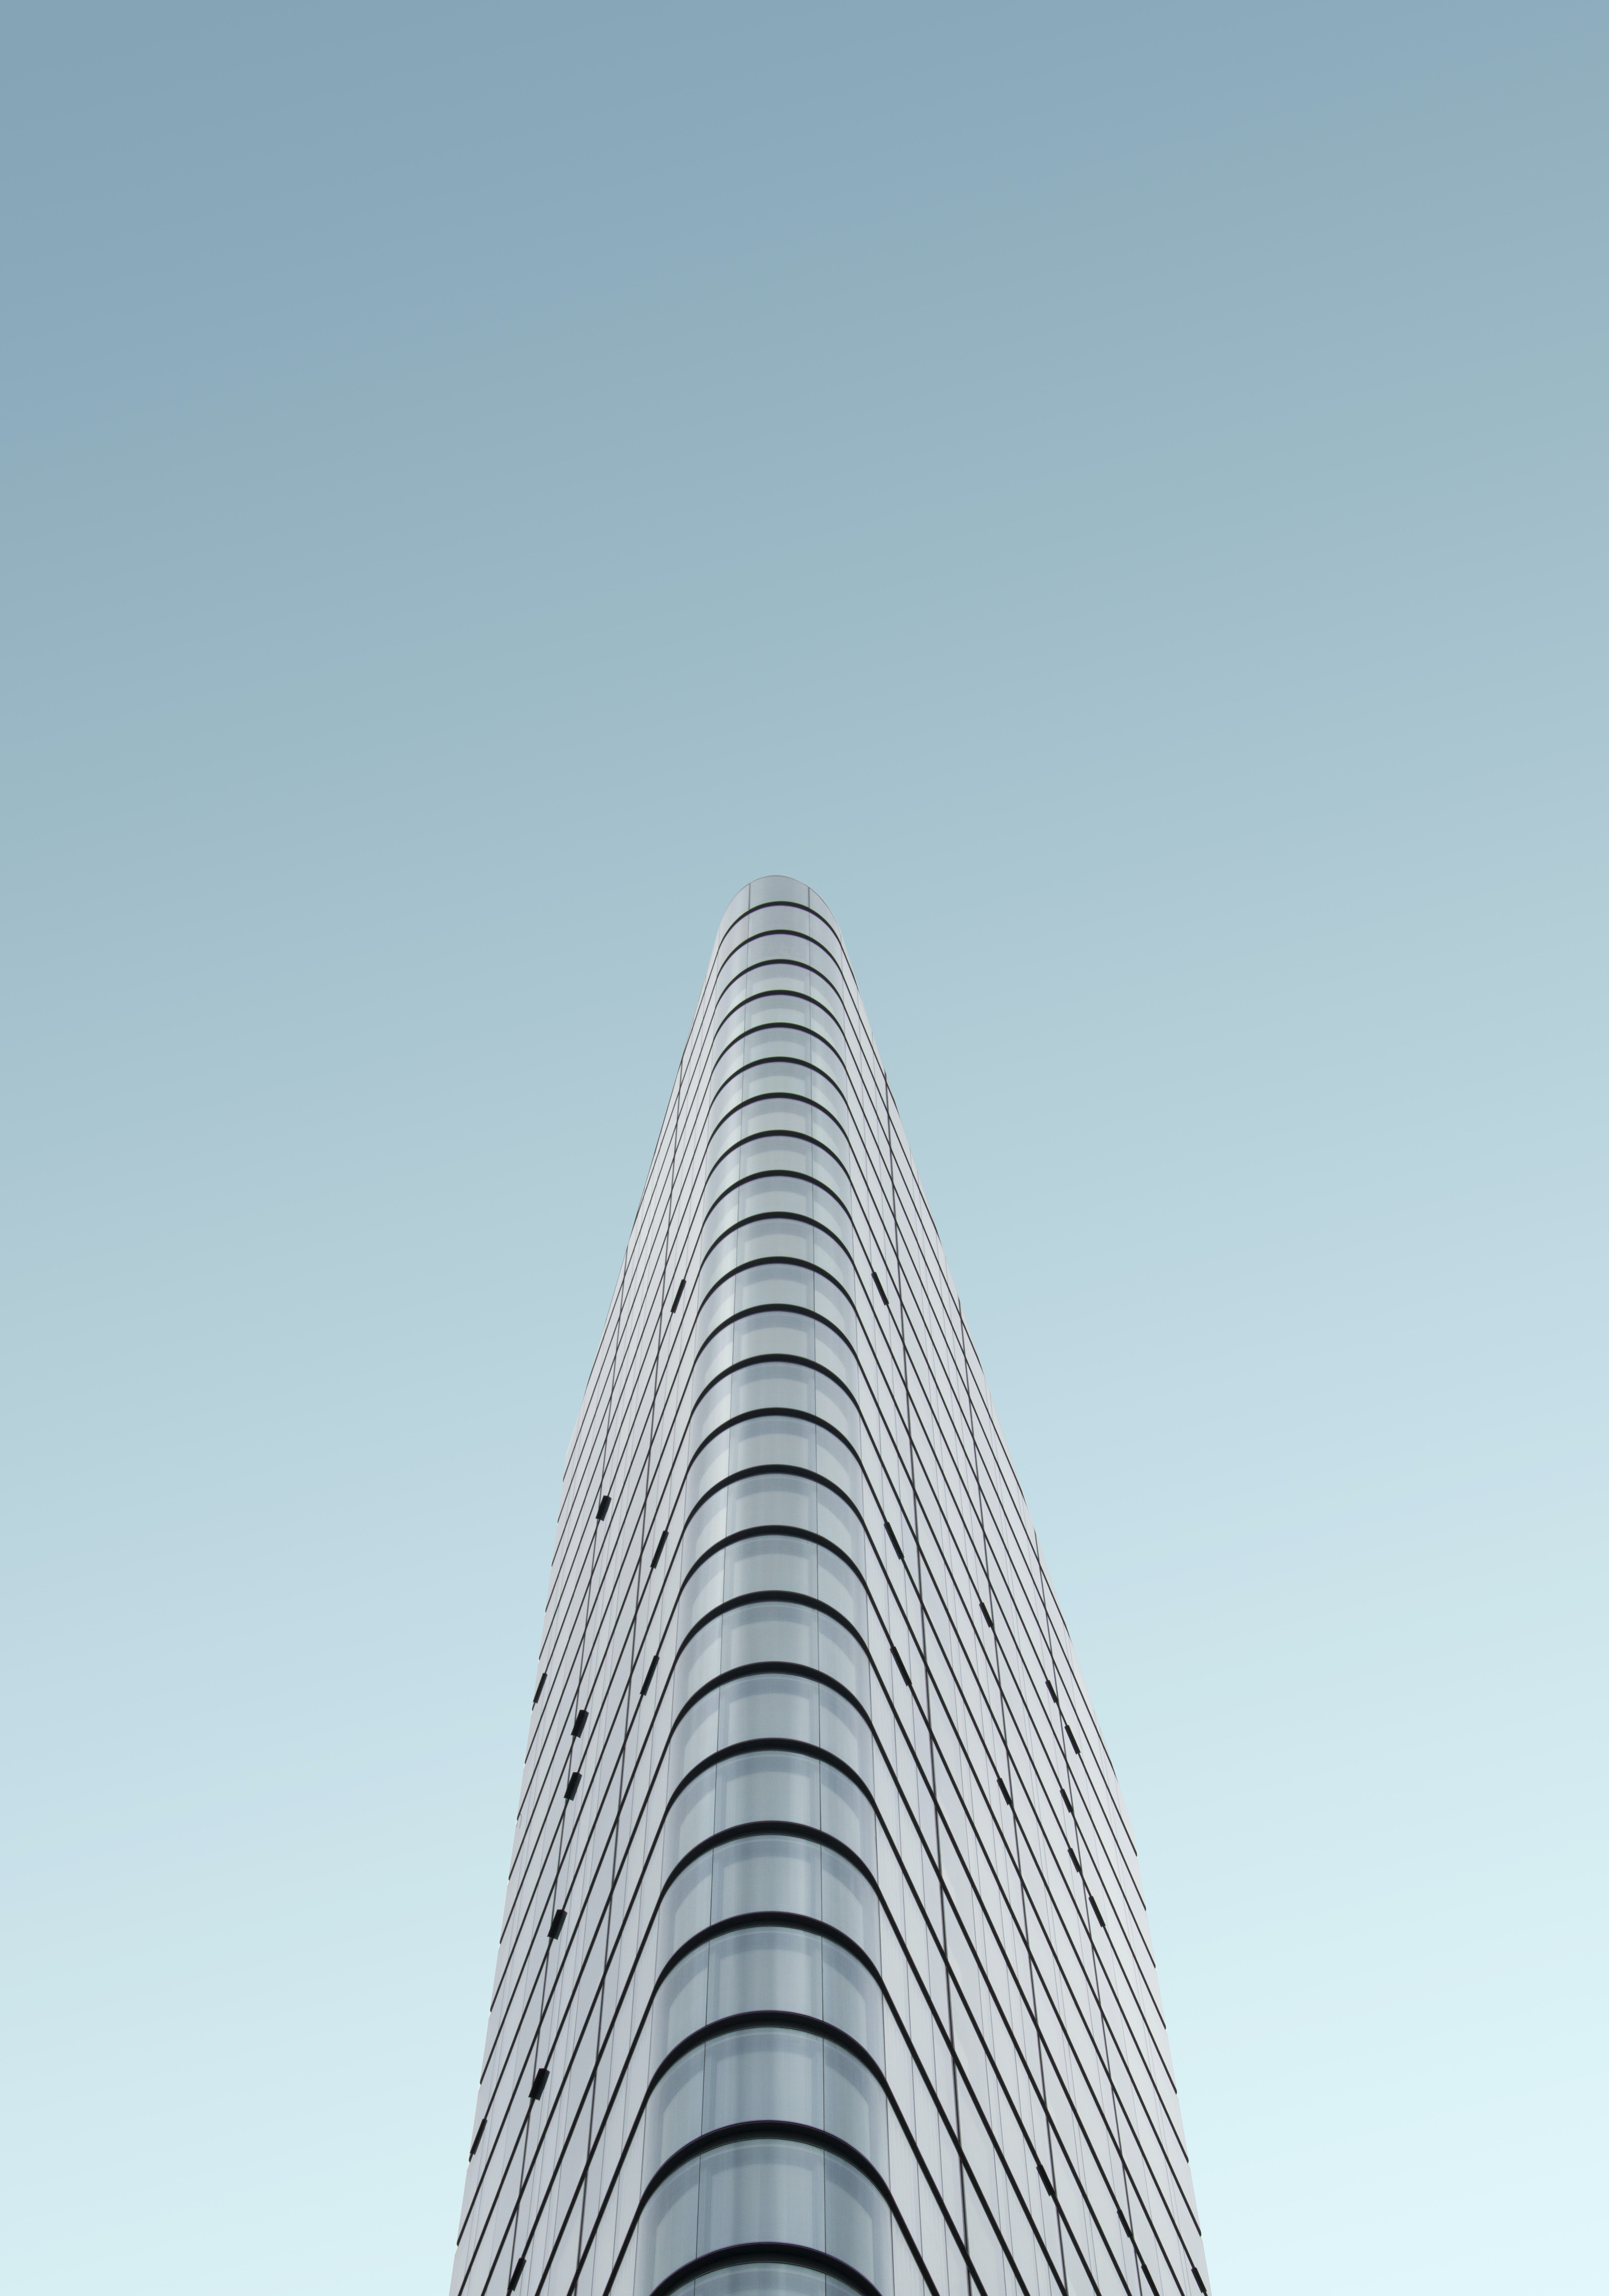 grey glass high-rise building during daytime